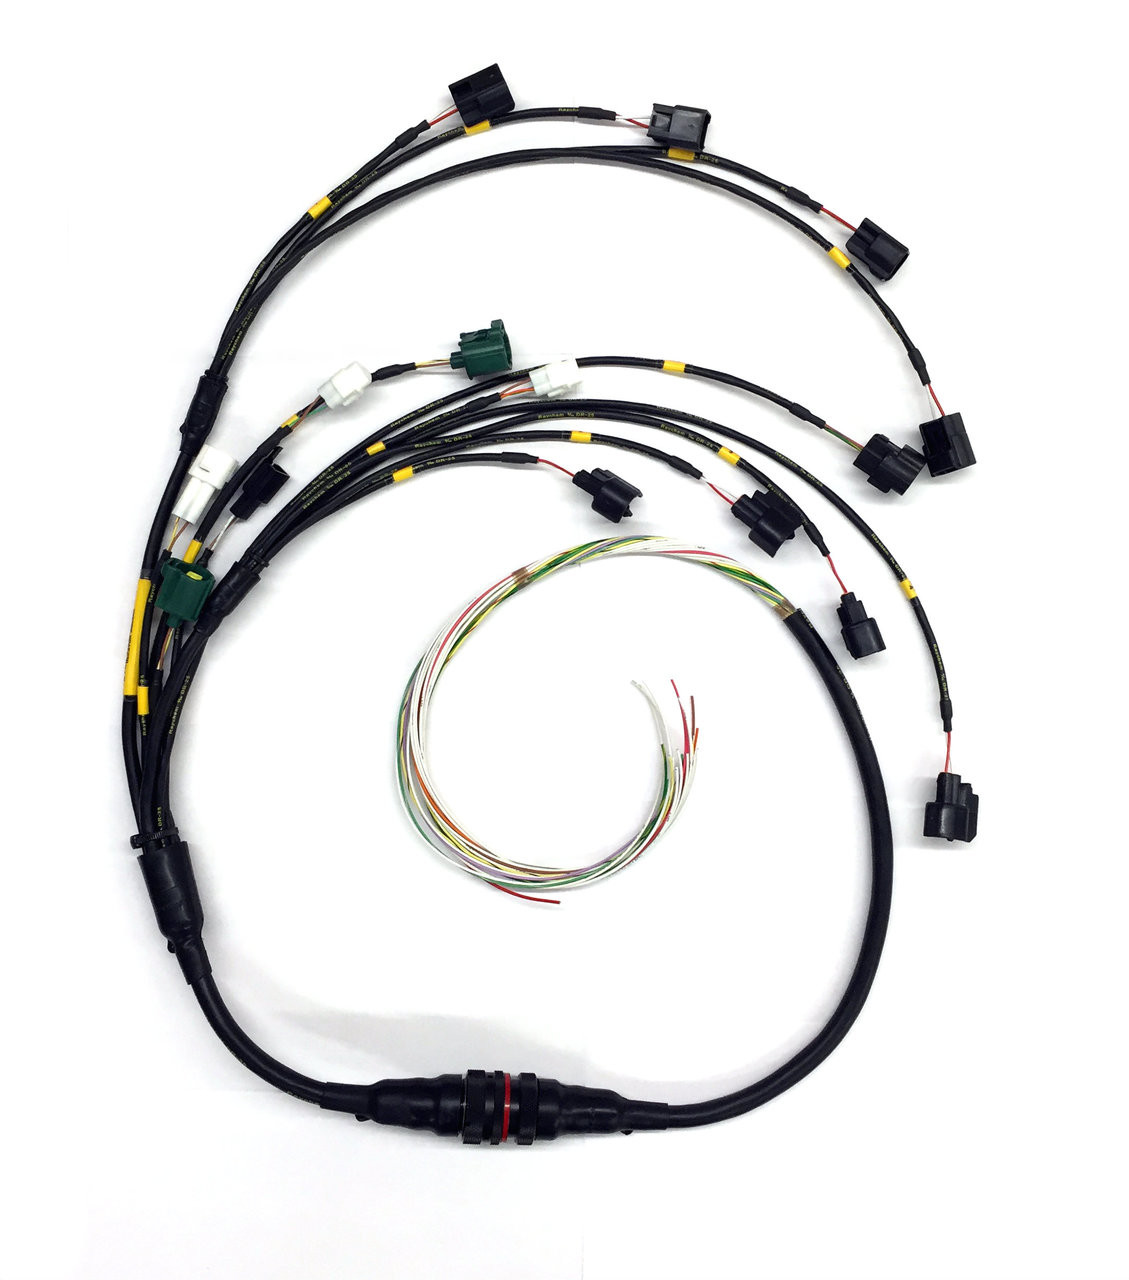 RSR Race Spec Autosport Flying Lead Engine Harness Suzuki GSX1300R Hayabusa  (99-19)